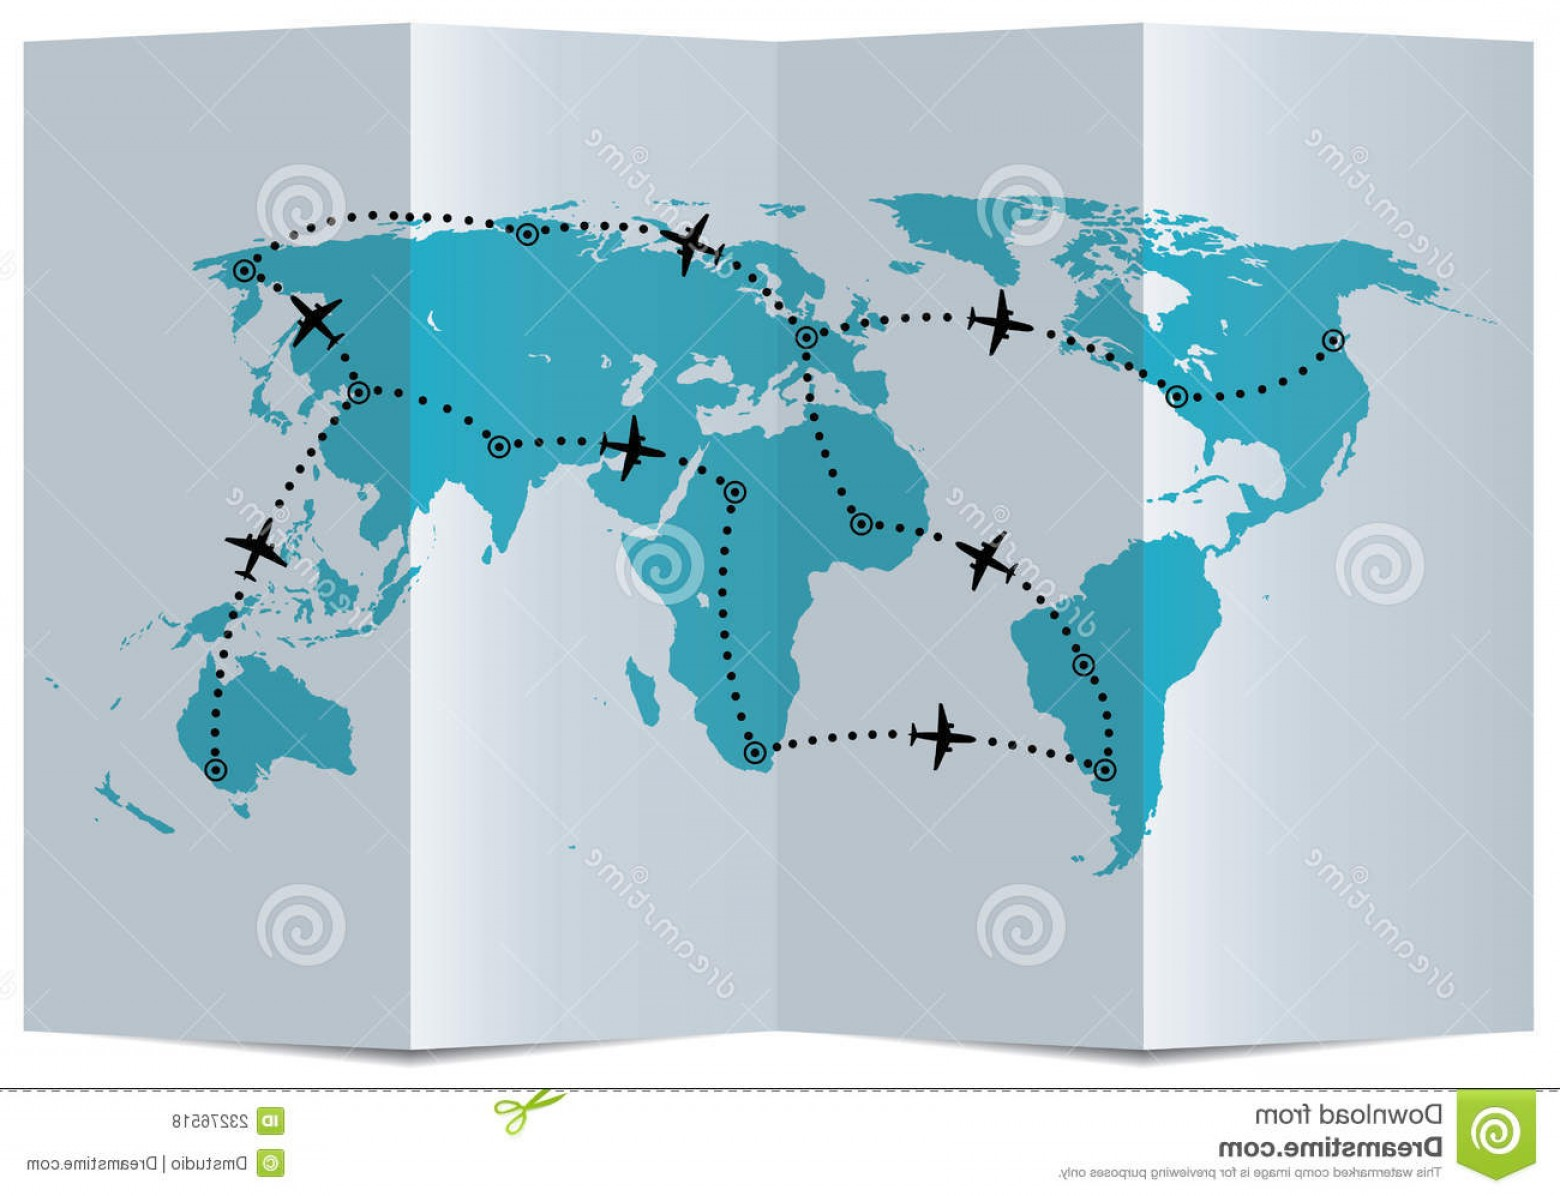 FLIR Flight Path Vector: Royalty Free Stock Photos Vector Map Airplane Flight Paths Image